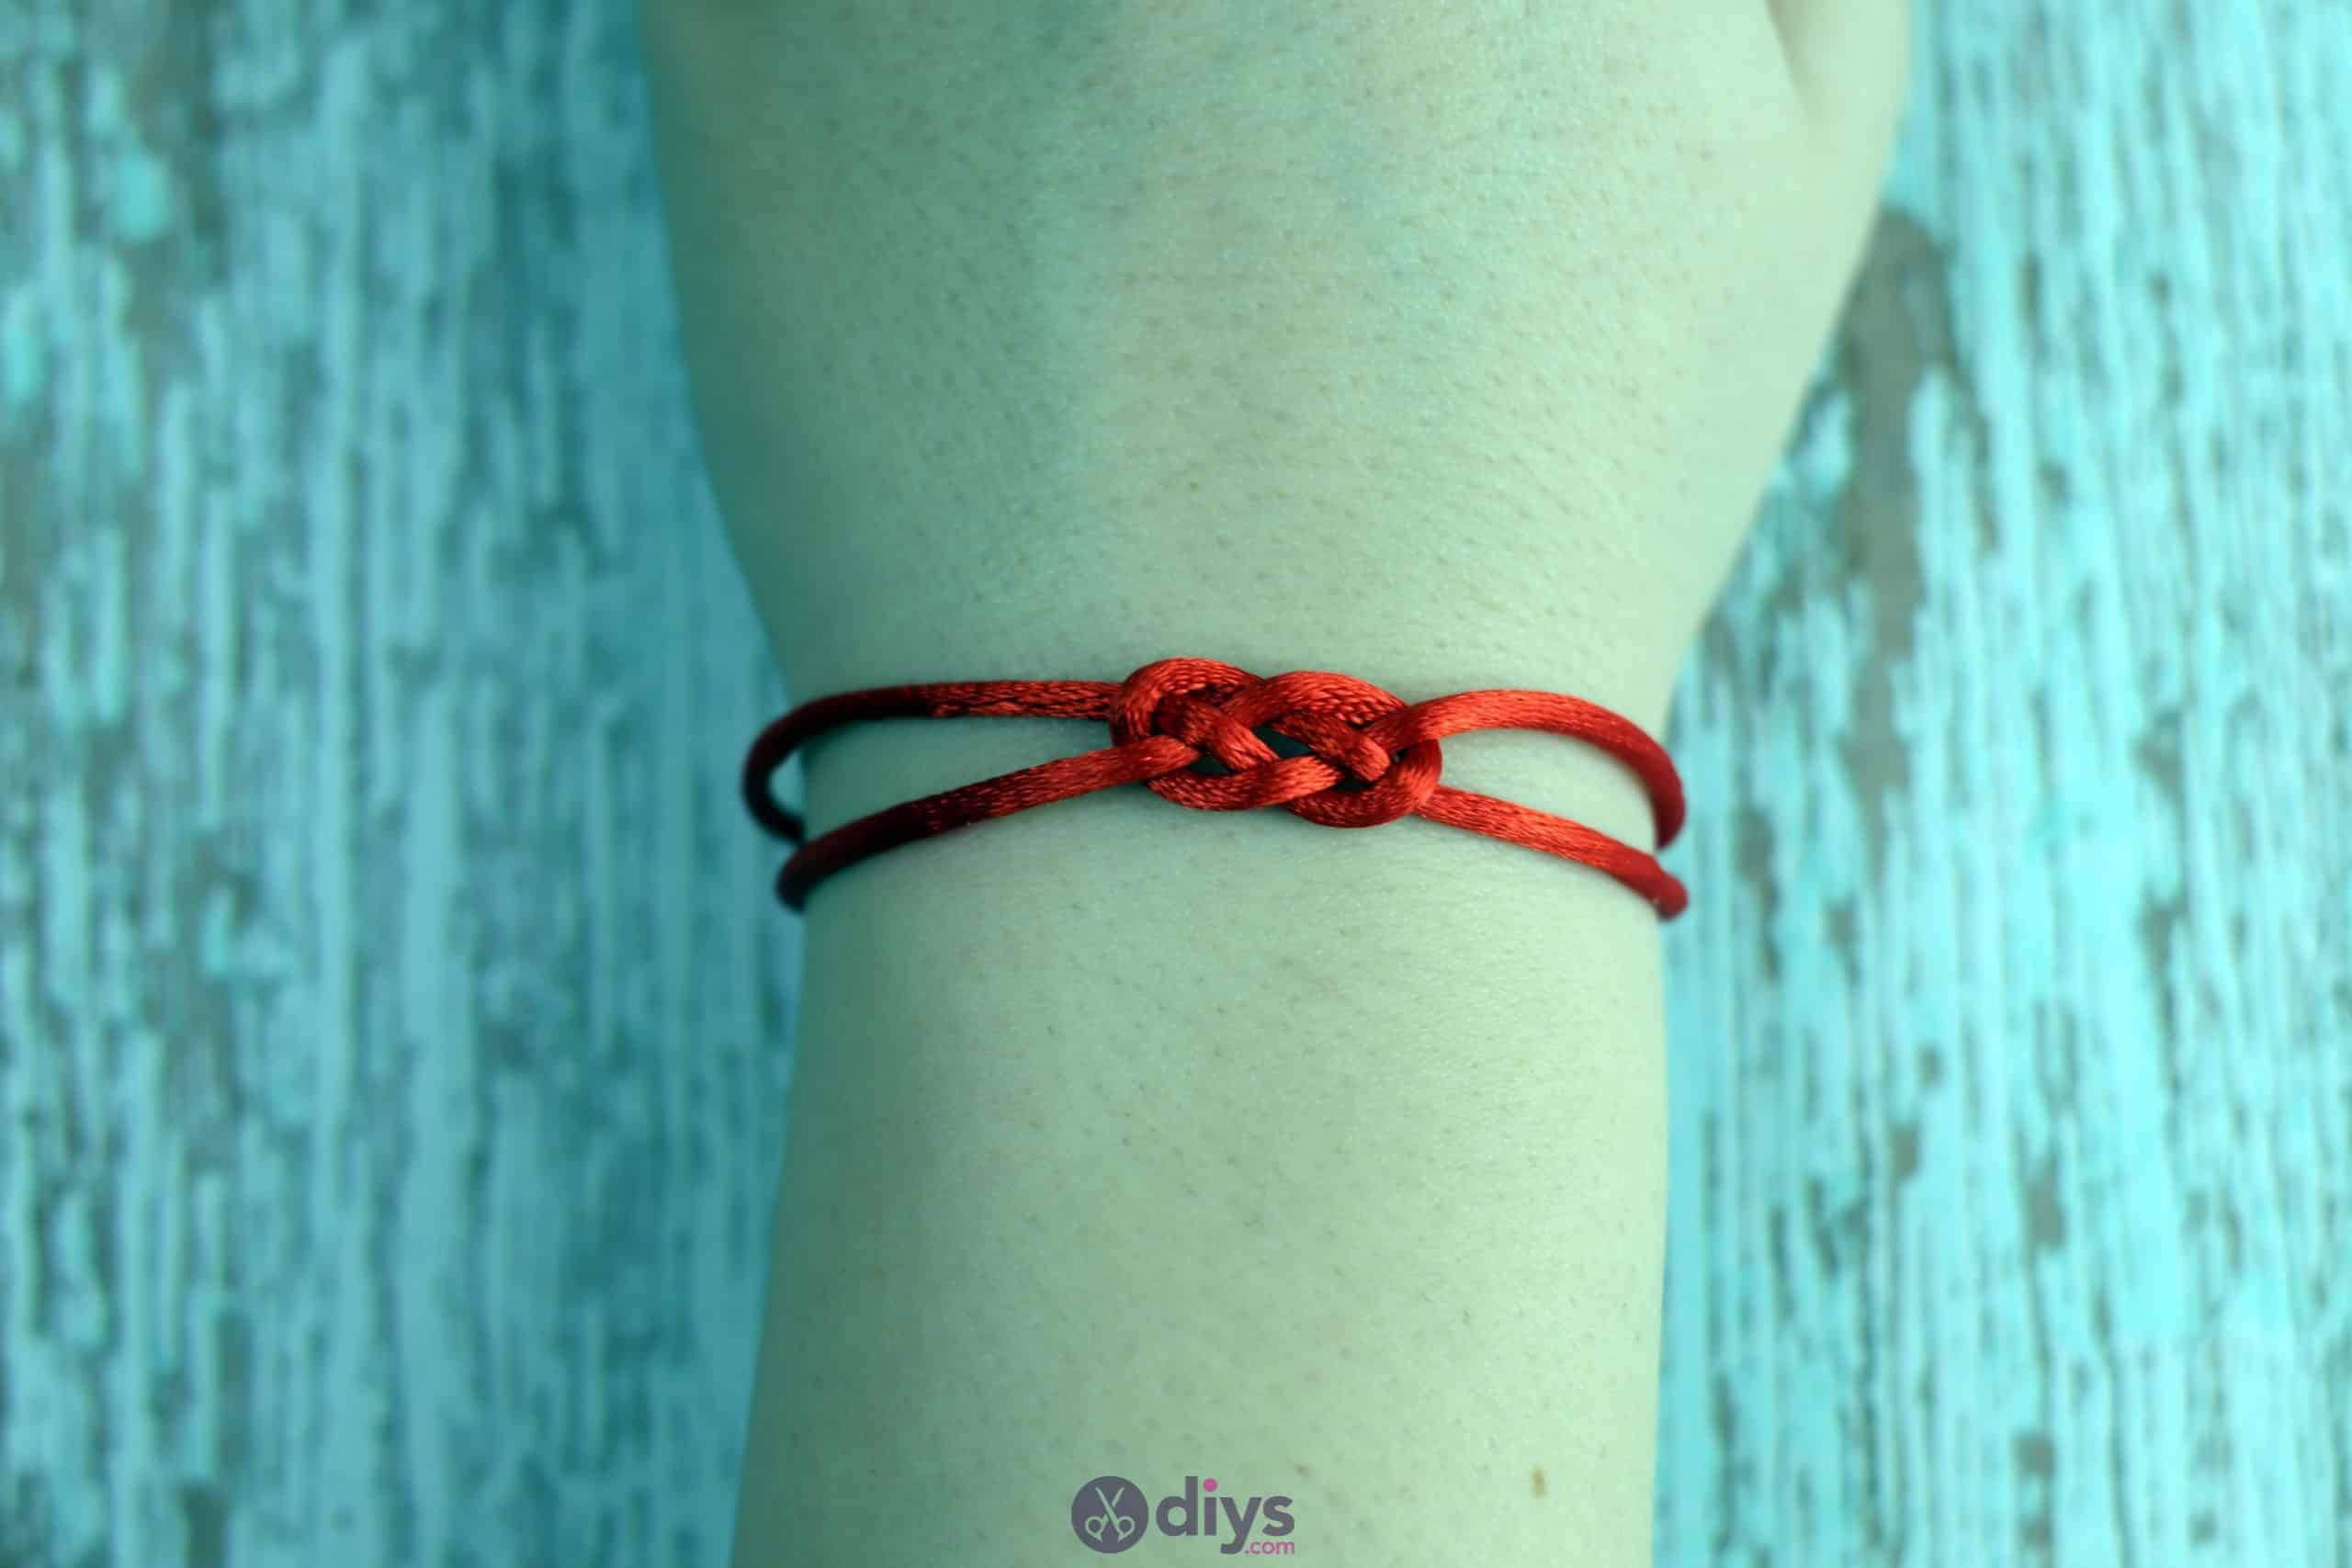 Diy knotted bracelet simple porject